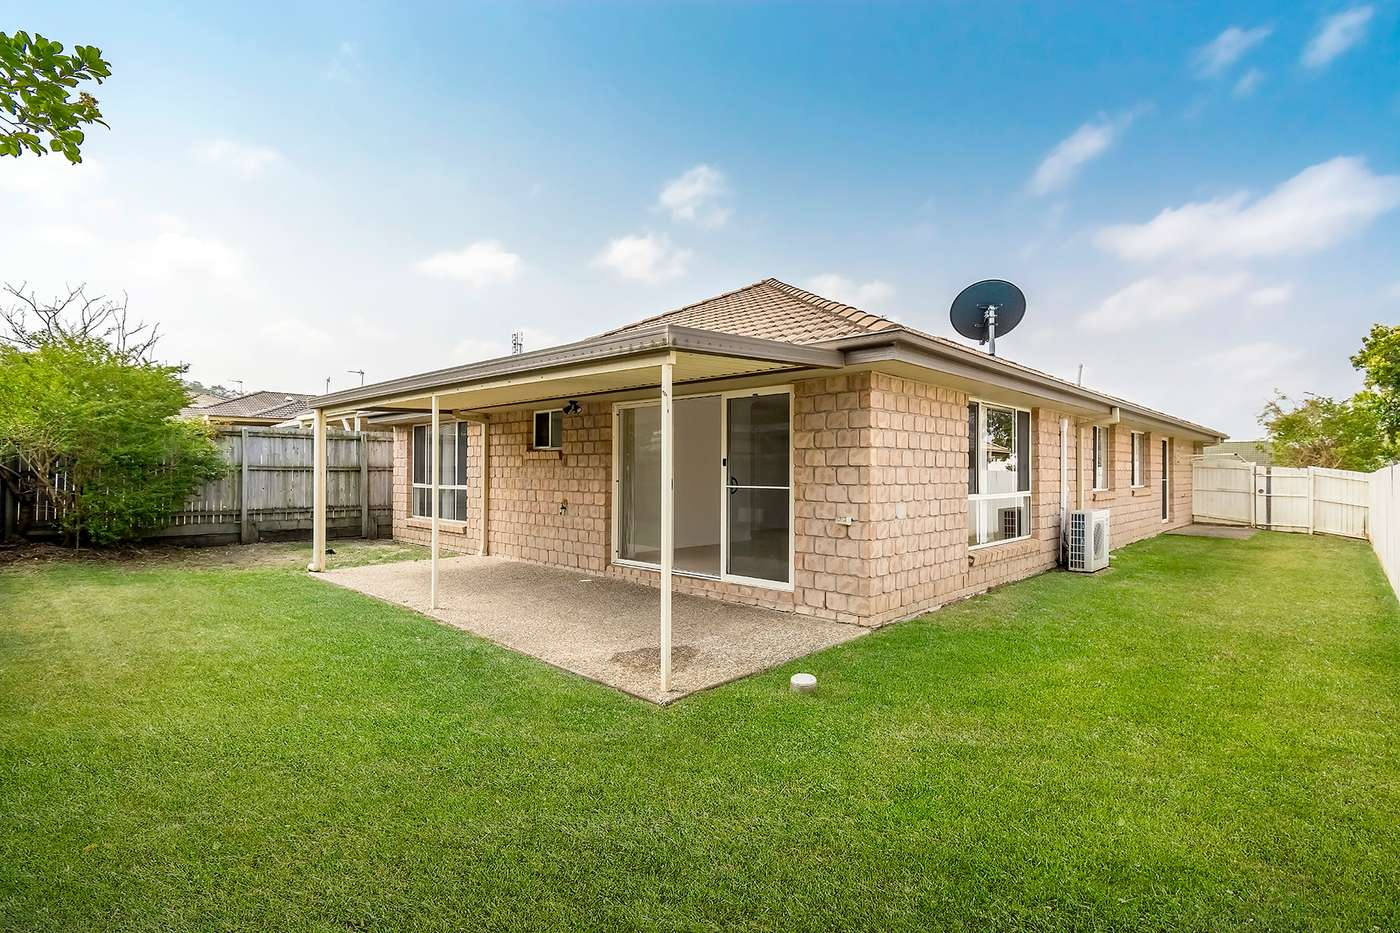 Main view of Homely house listing, 28 Billinghurst Crescent, Upper Coomera, QLD 4209